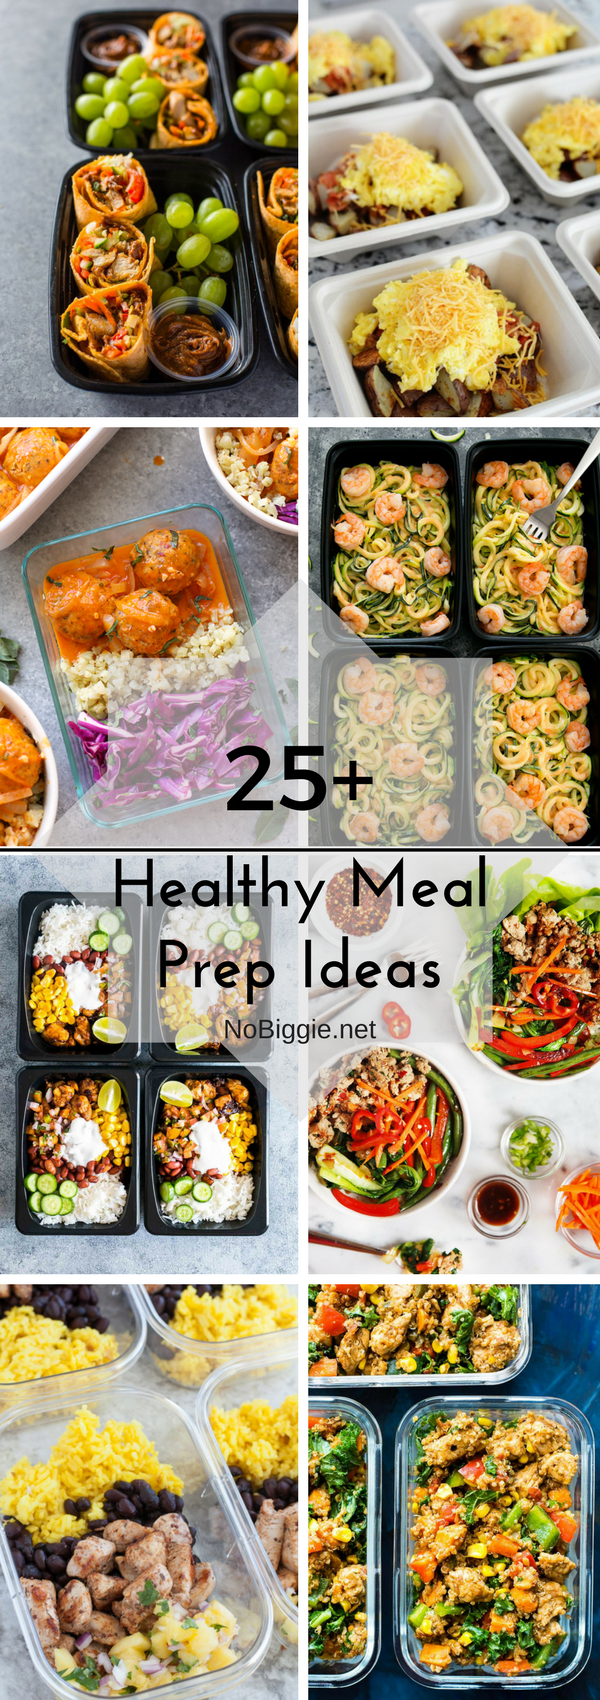 25+ healthy meal prep ideas | NoBiggie.net